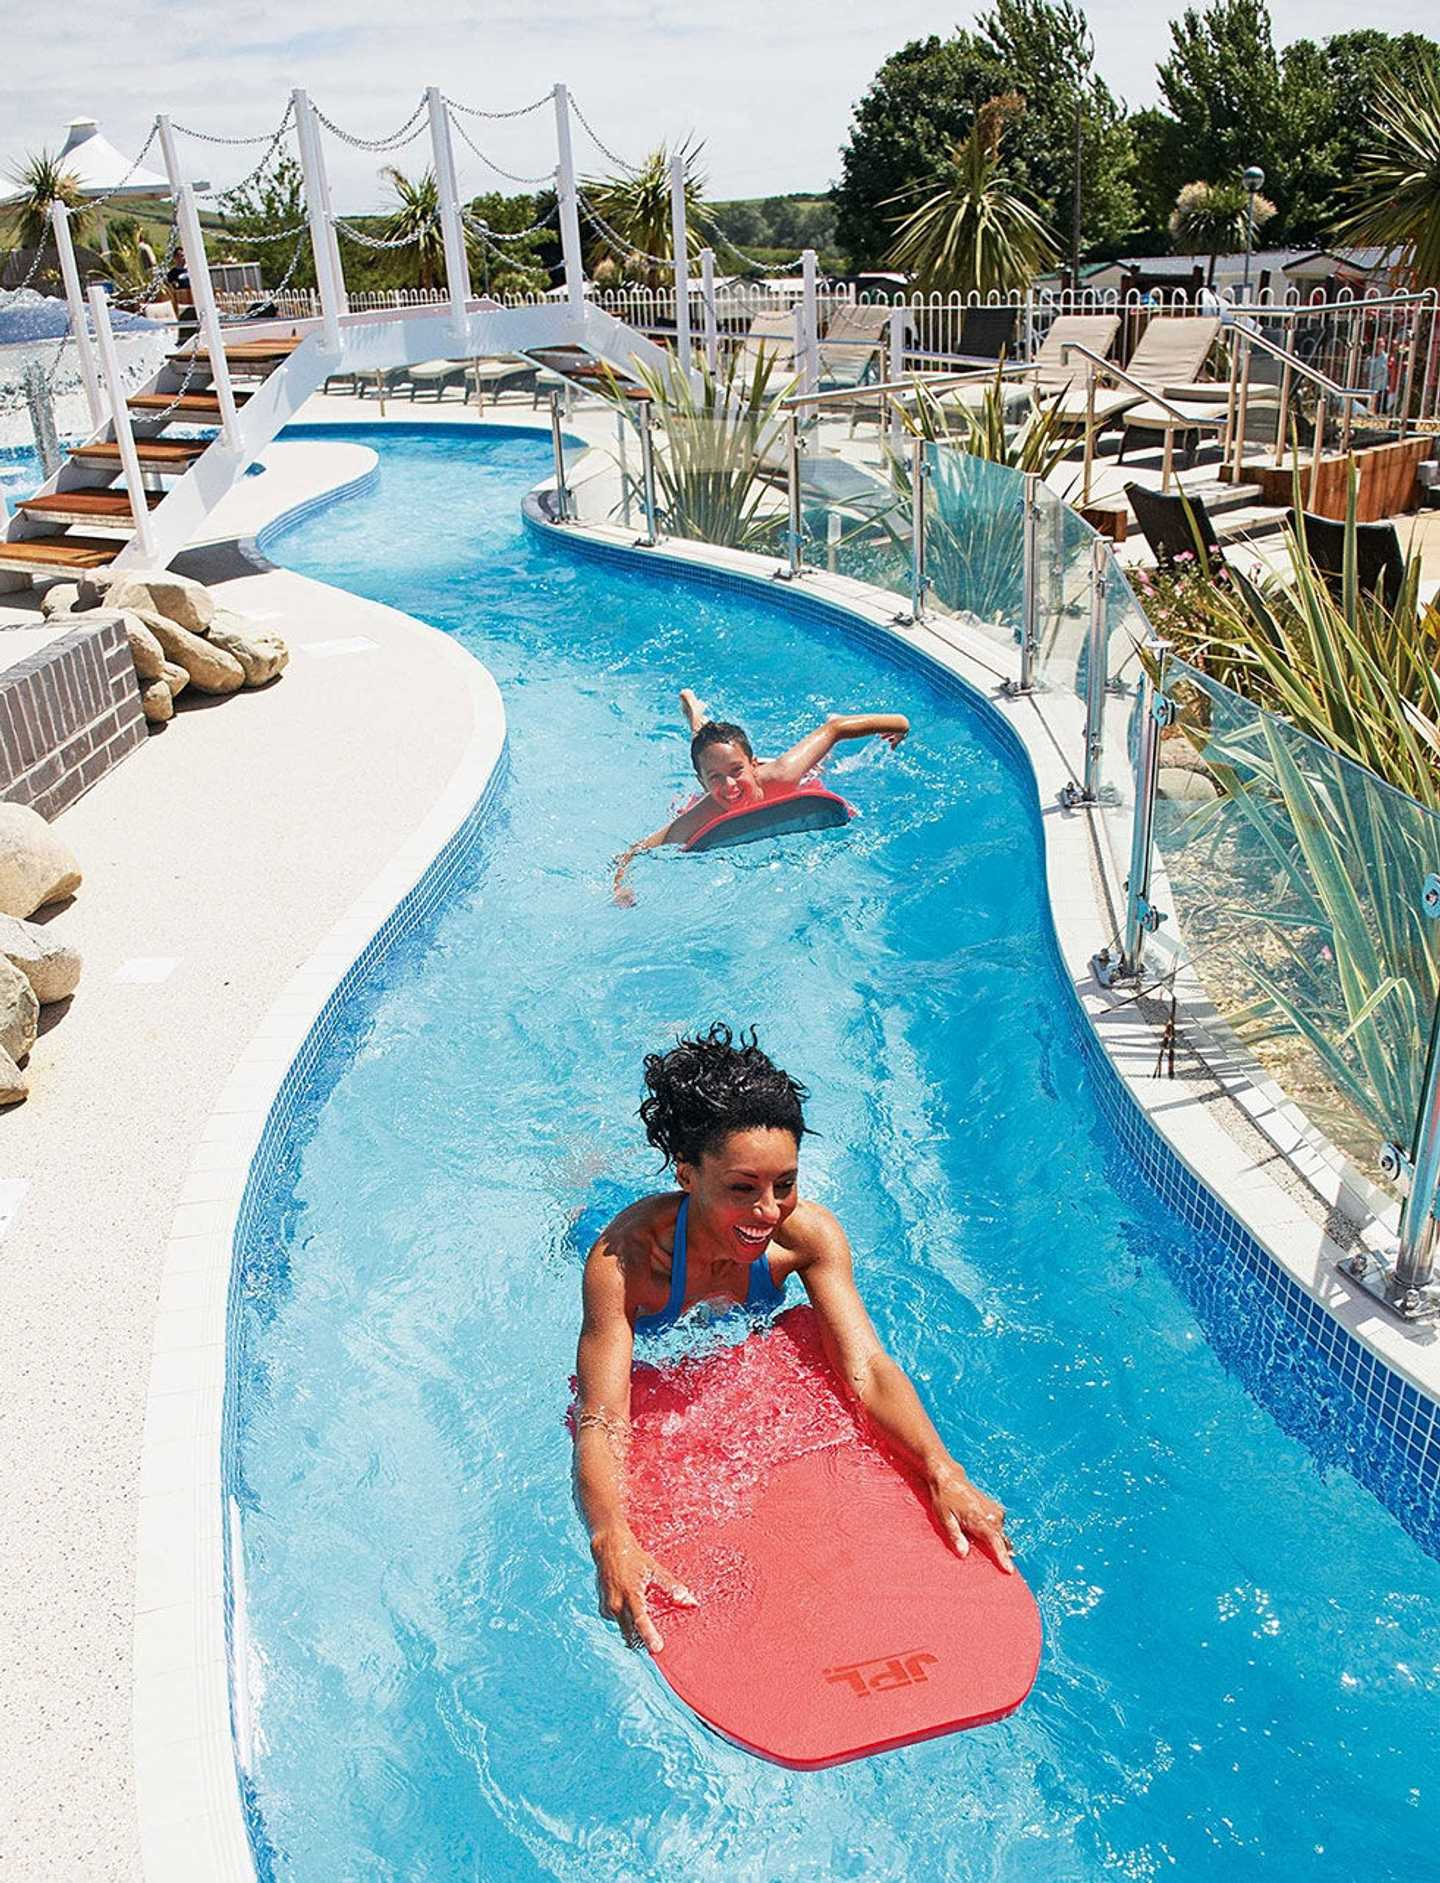 Guests drifting down the lazy river